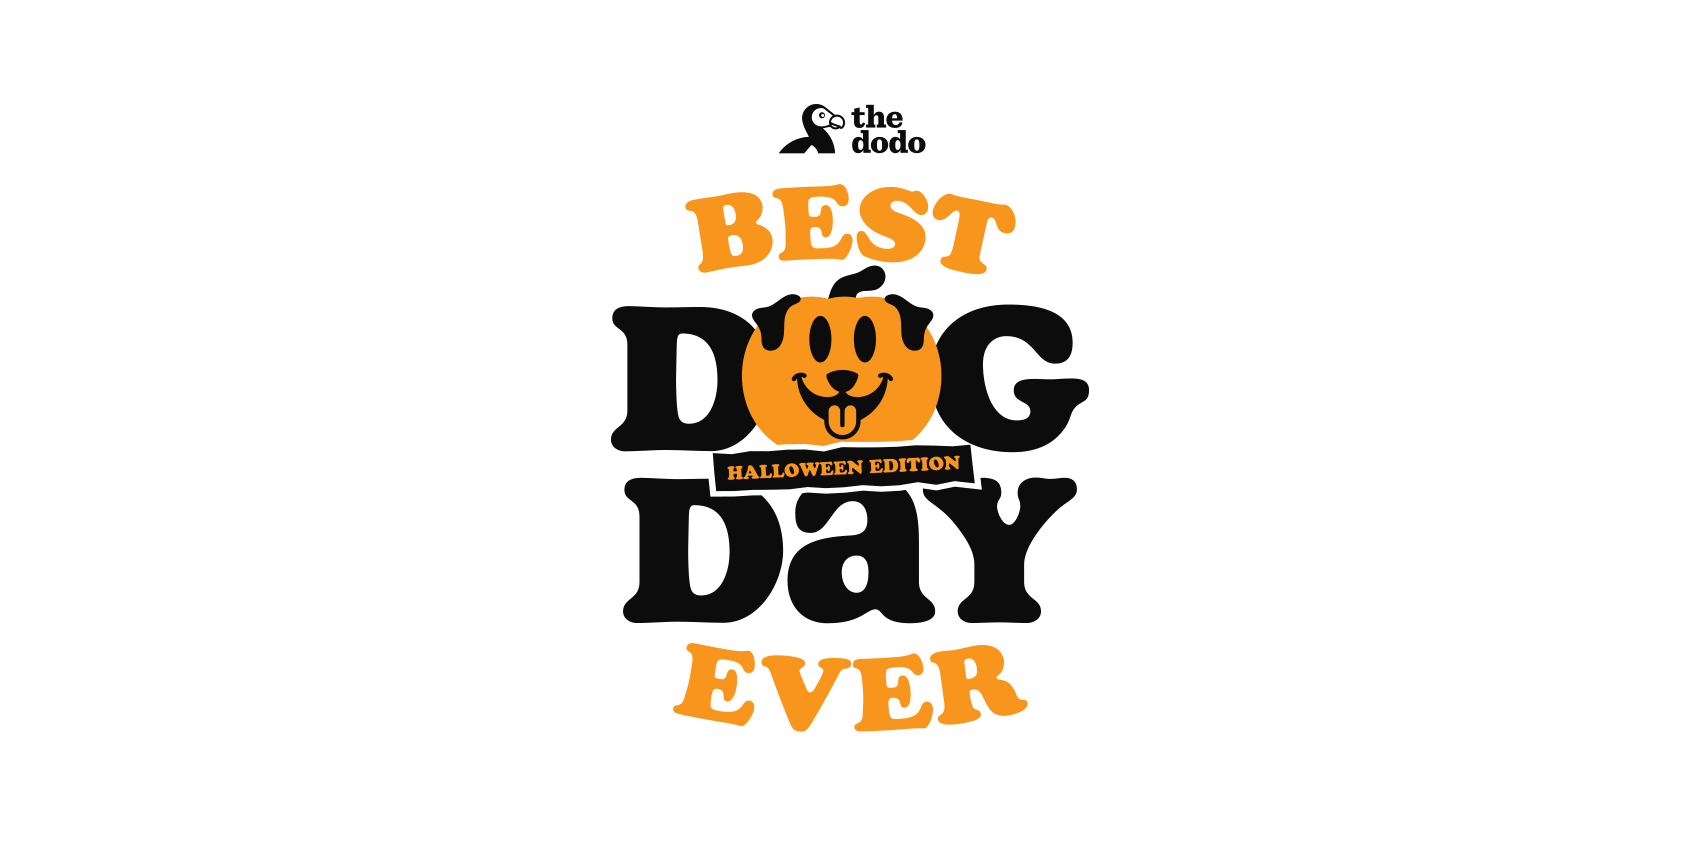 Tickets for The Dodo's Best Dog Day Ever | Halloween Edition in Brooklyn from ShowClix